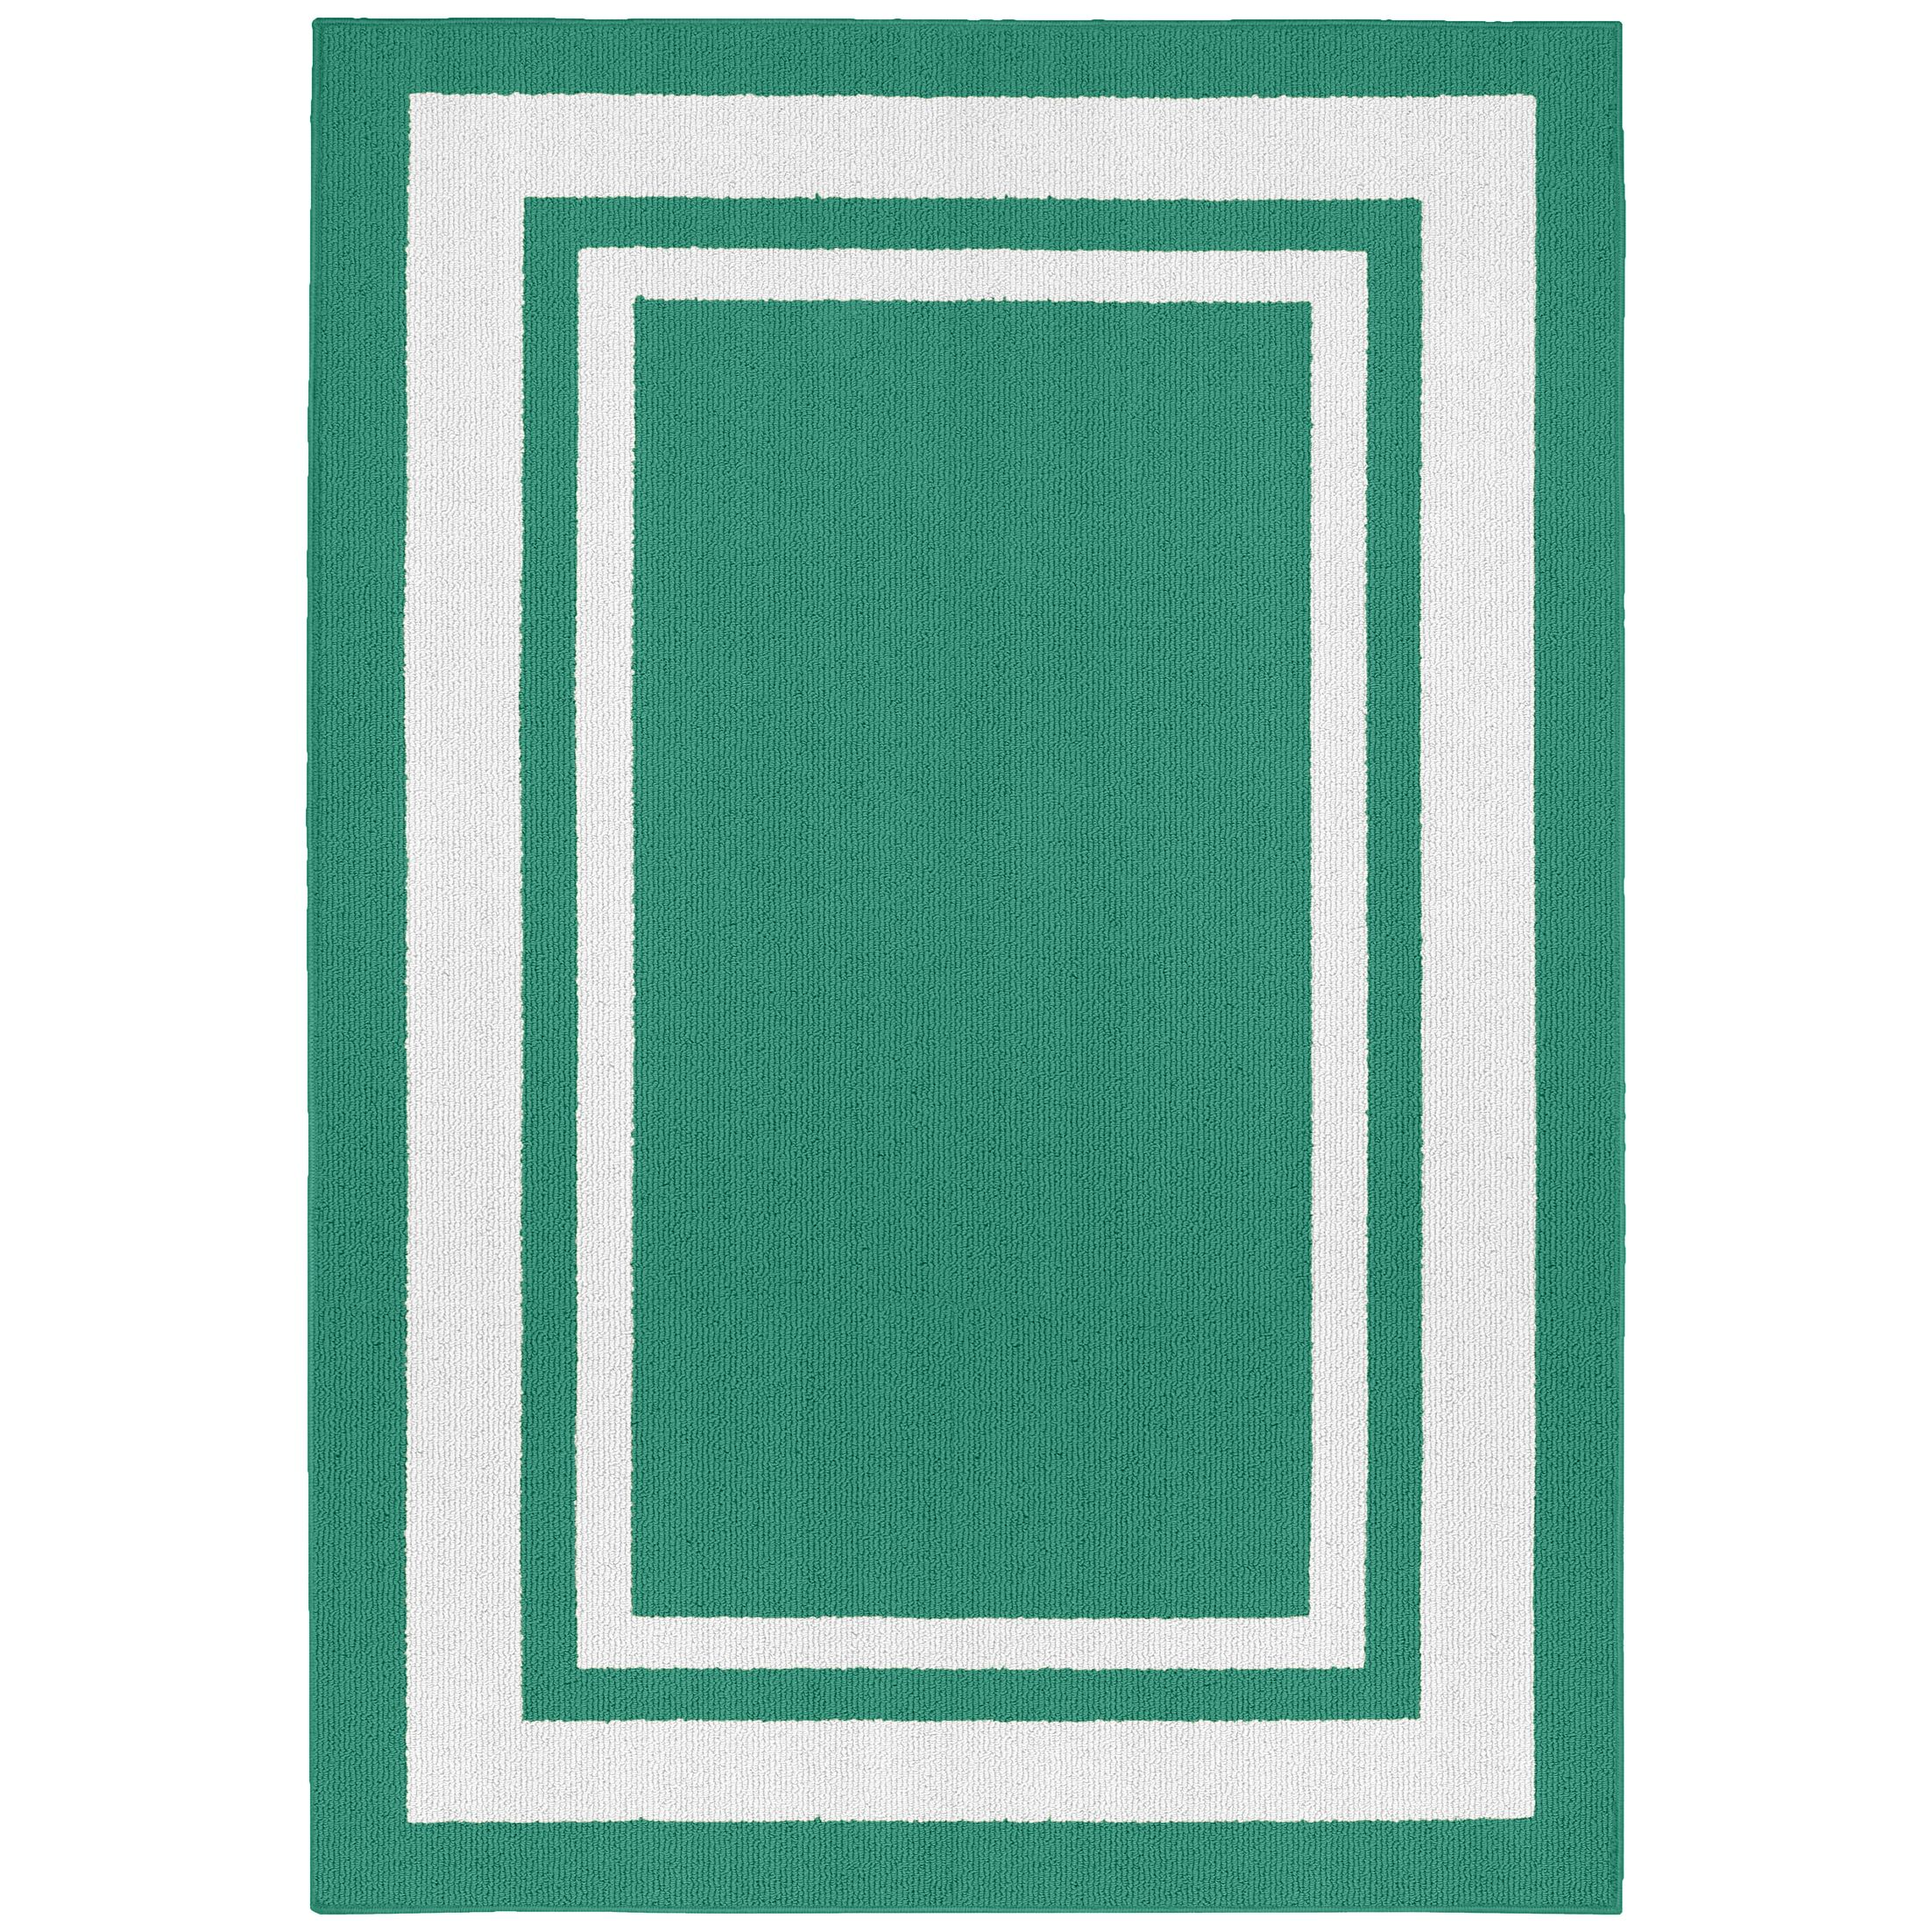 Ginger Green/White Indoor/Outdoor Area Rug Rug Size: 2' x 5'